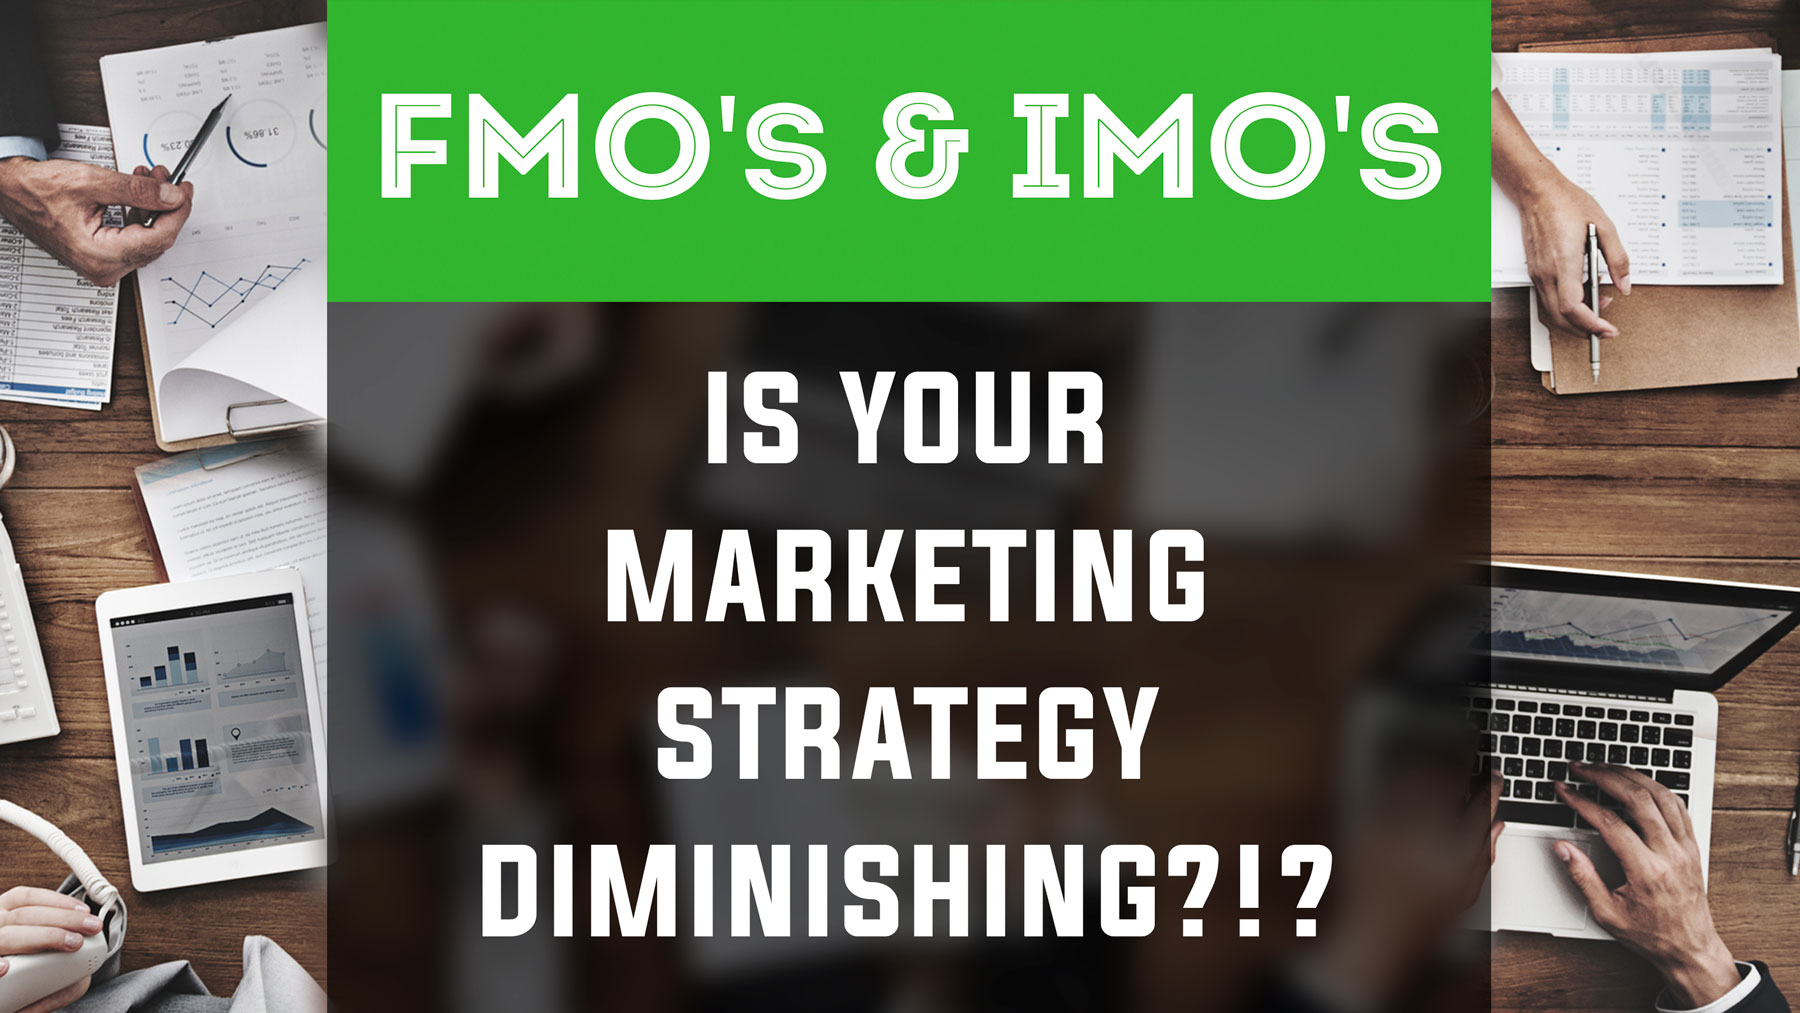 Fmo Imo financial advisor marketing